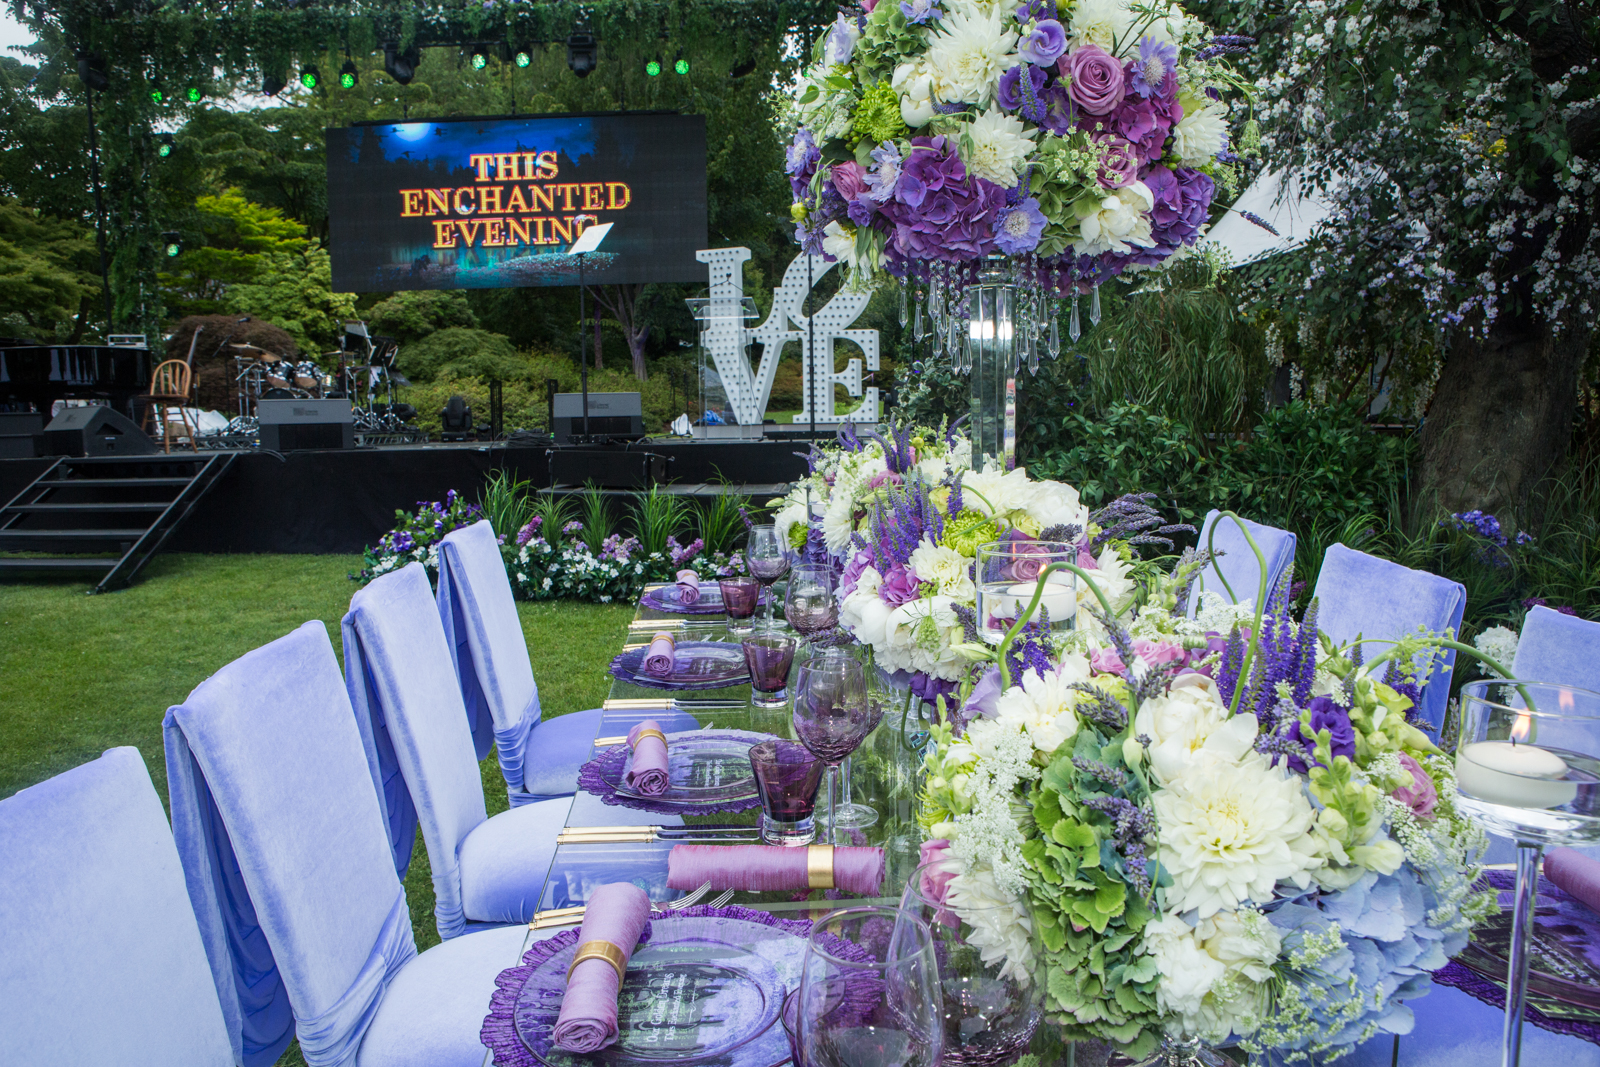 This Enchanted Evening - Good Gracious! Events